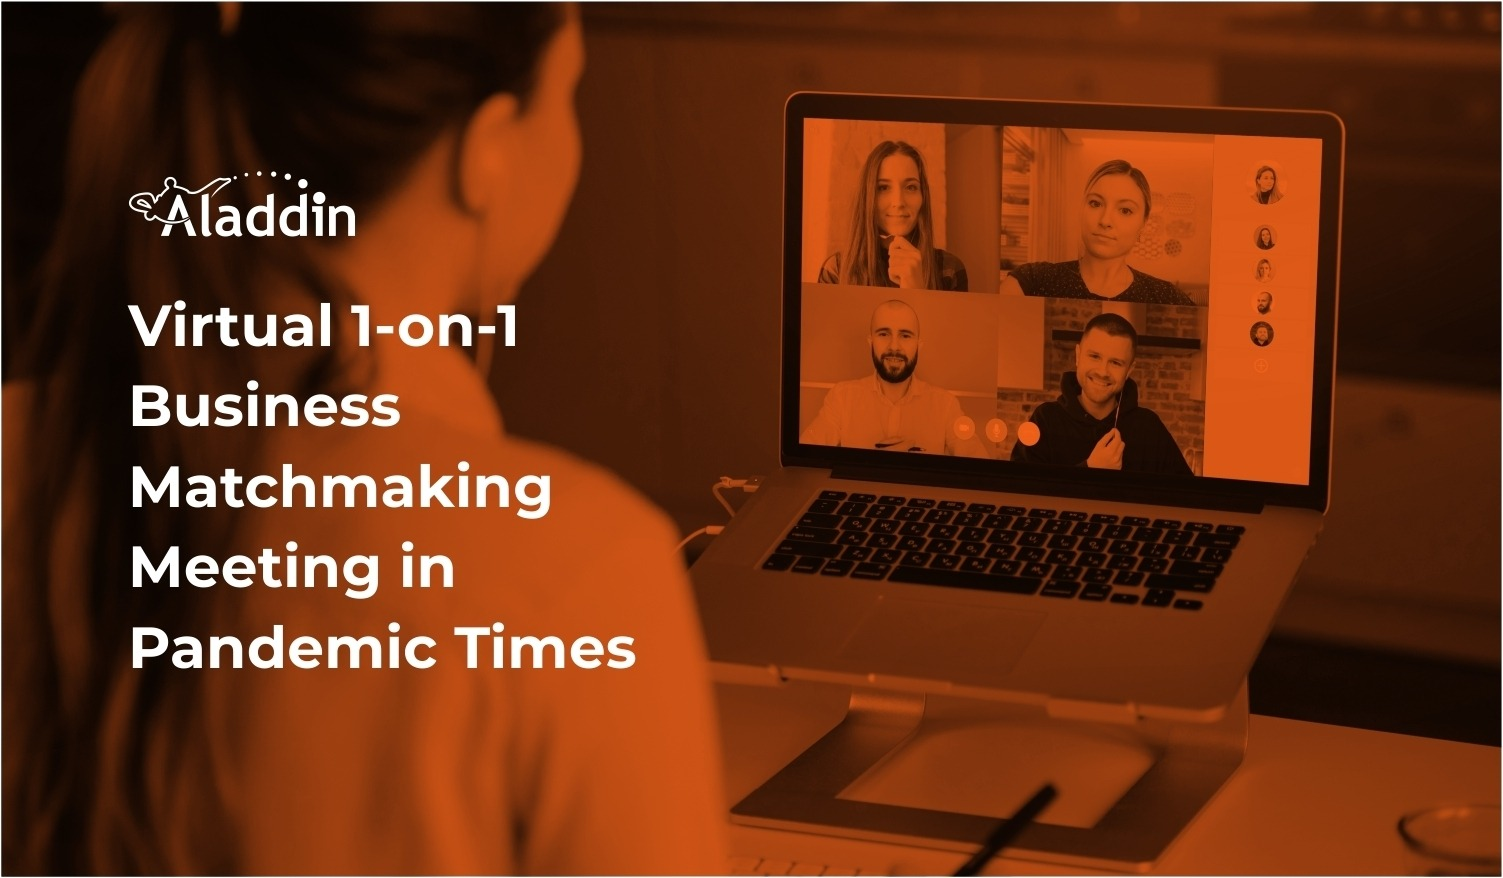 Virtual 1-on-1 Business Matchmaking Meeting in Pandemic Times